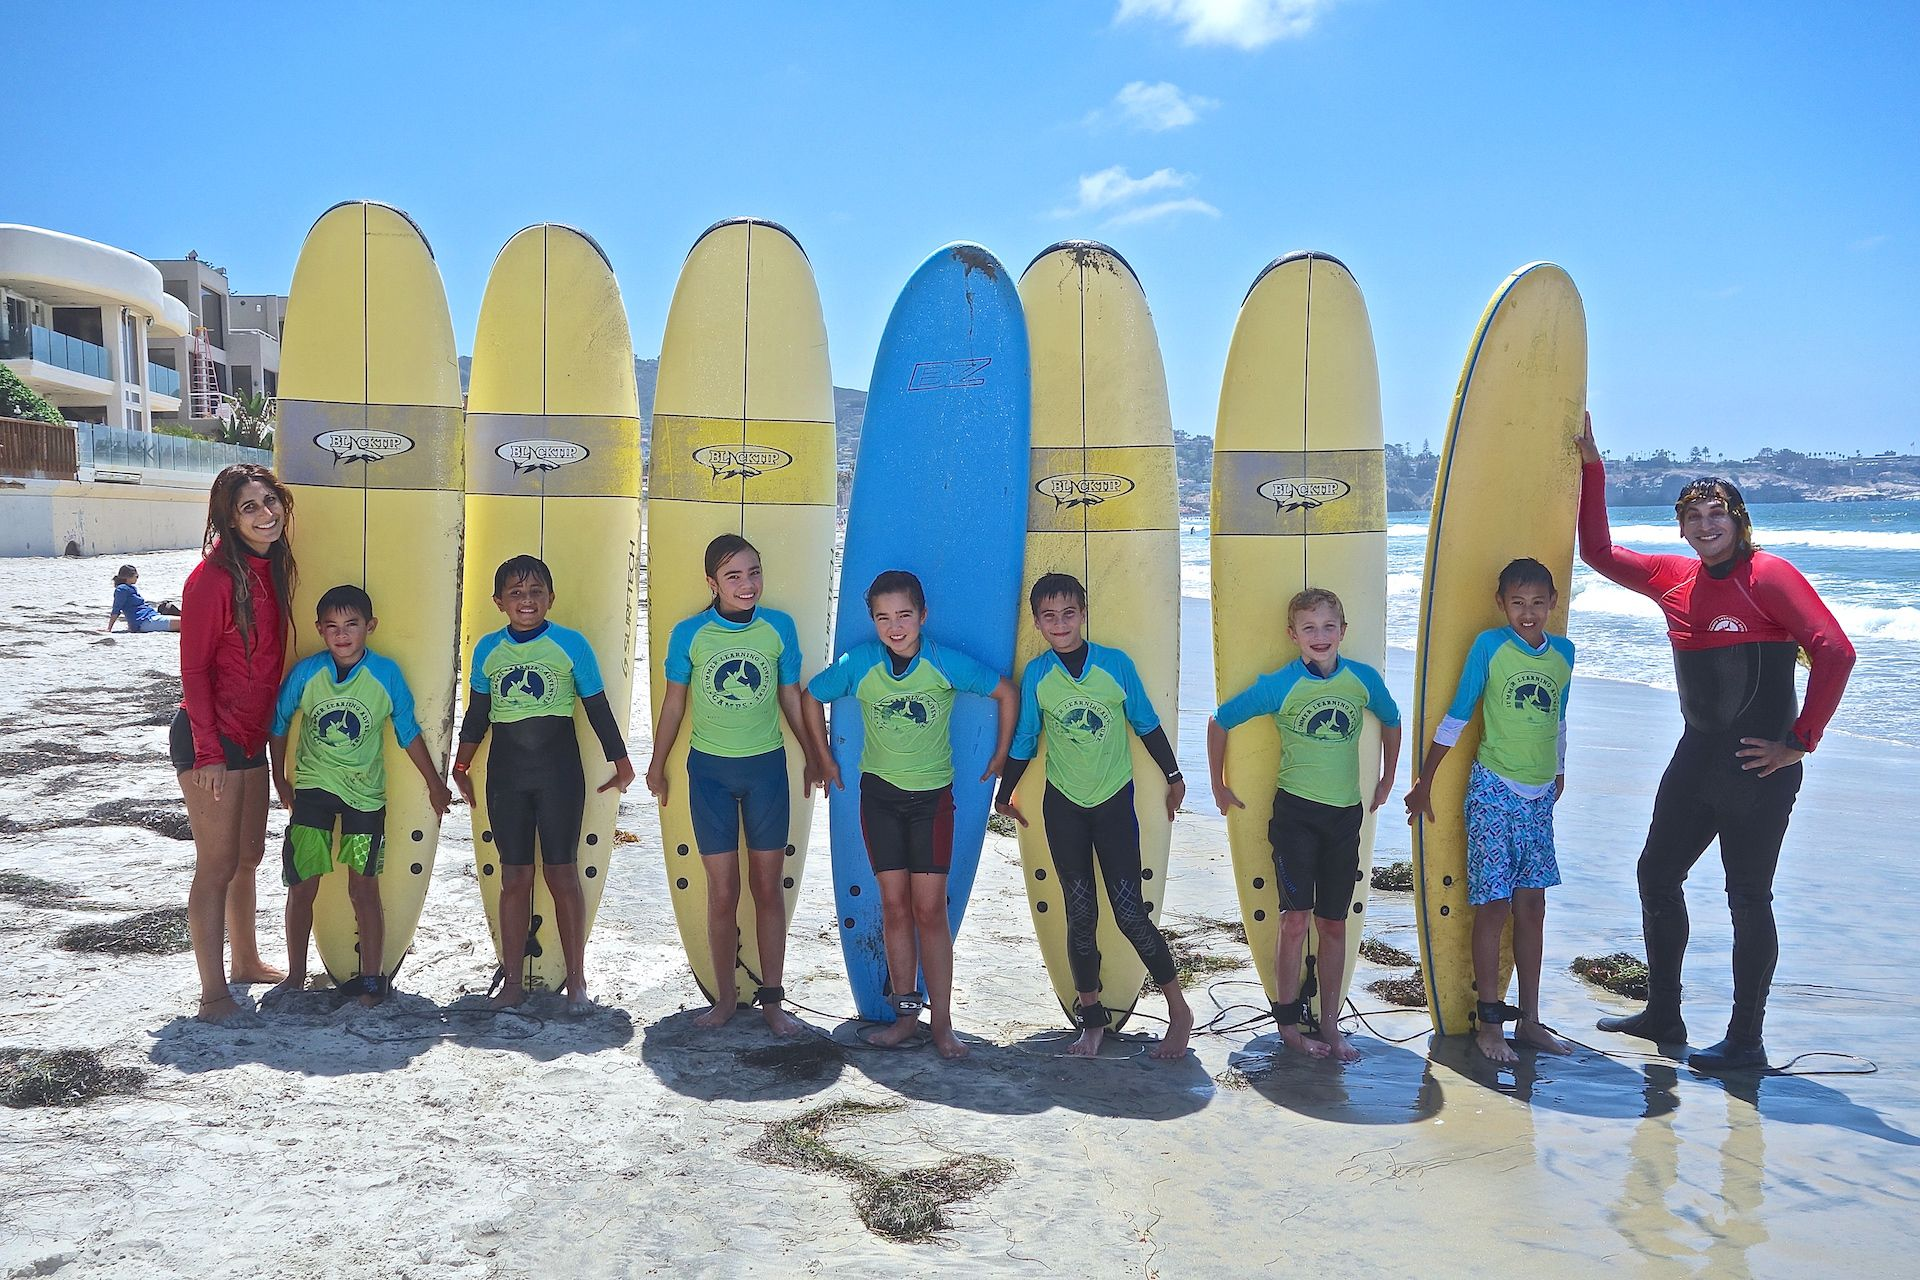 Join us for fun and adventure all summer long accredited by the